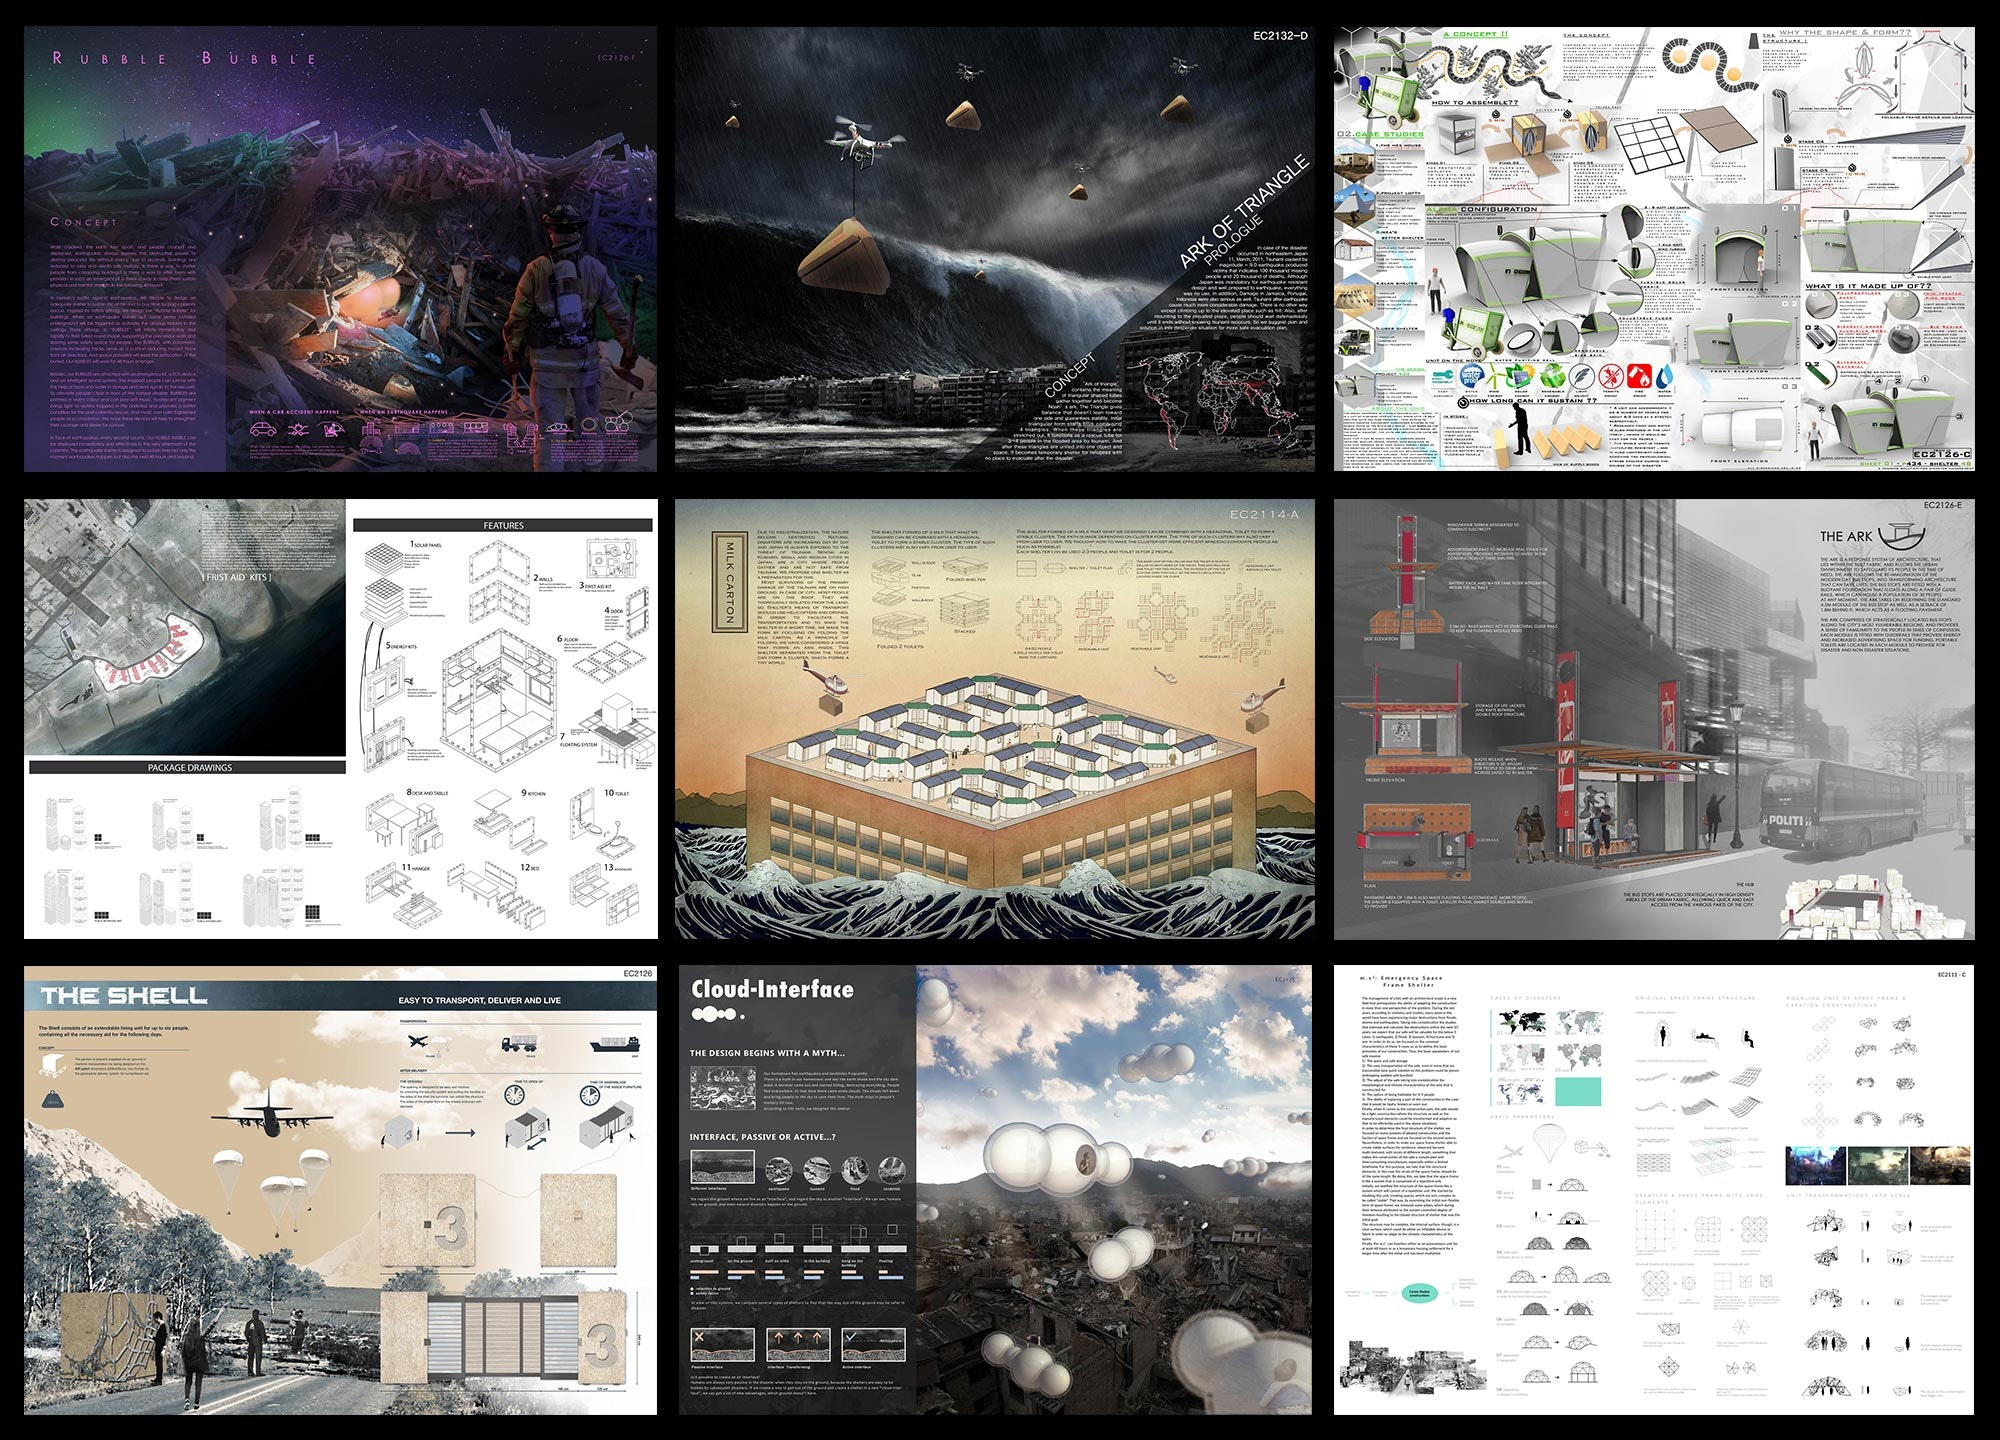 Instant win competitions online architecture